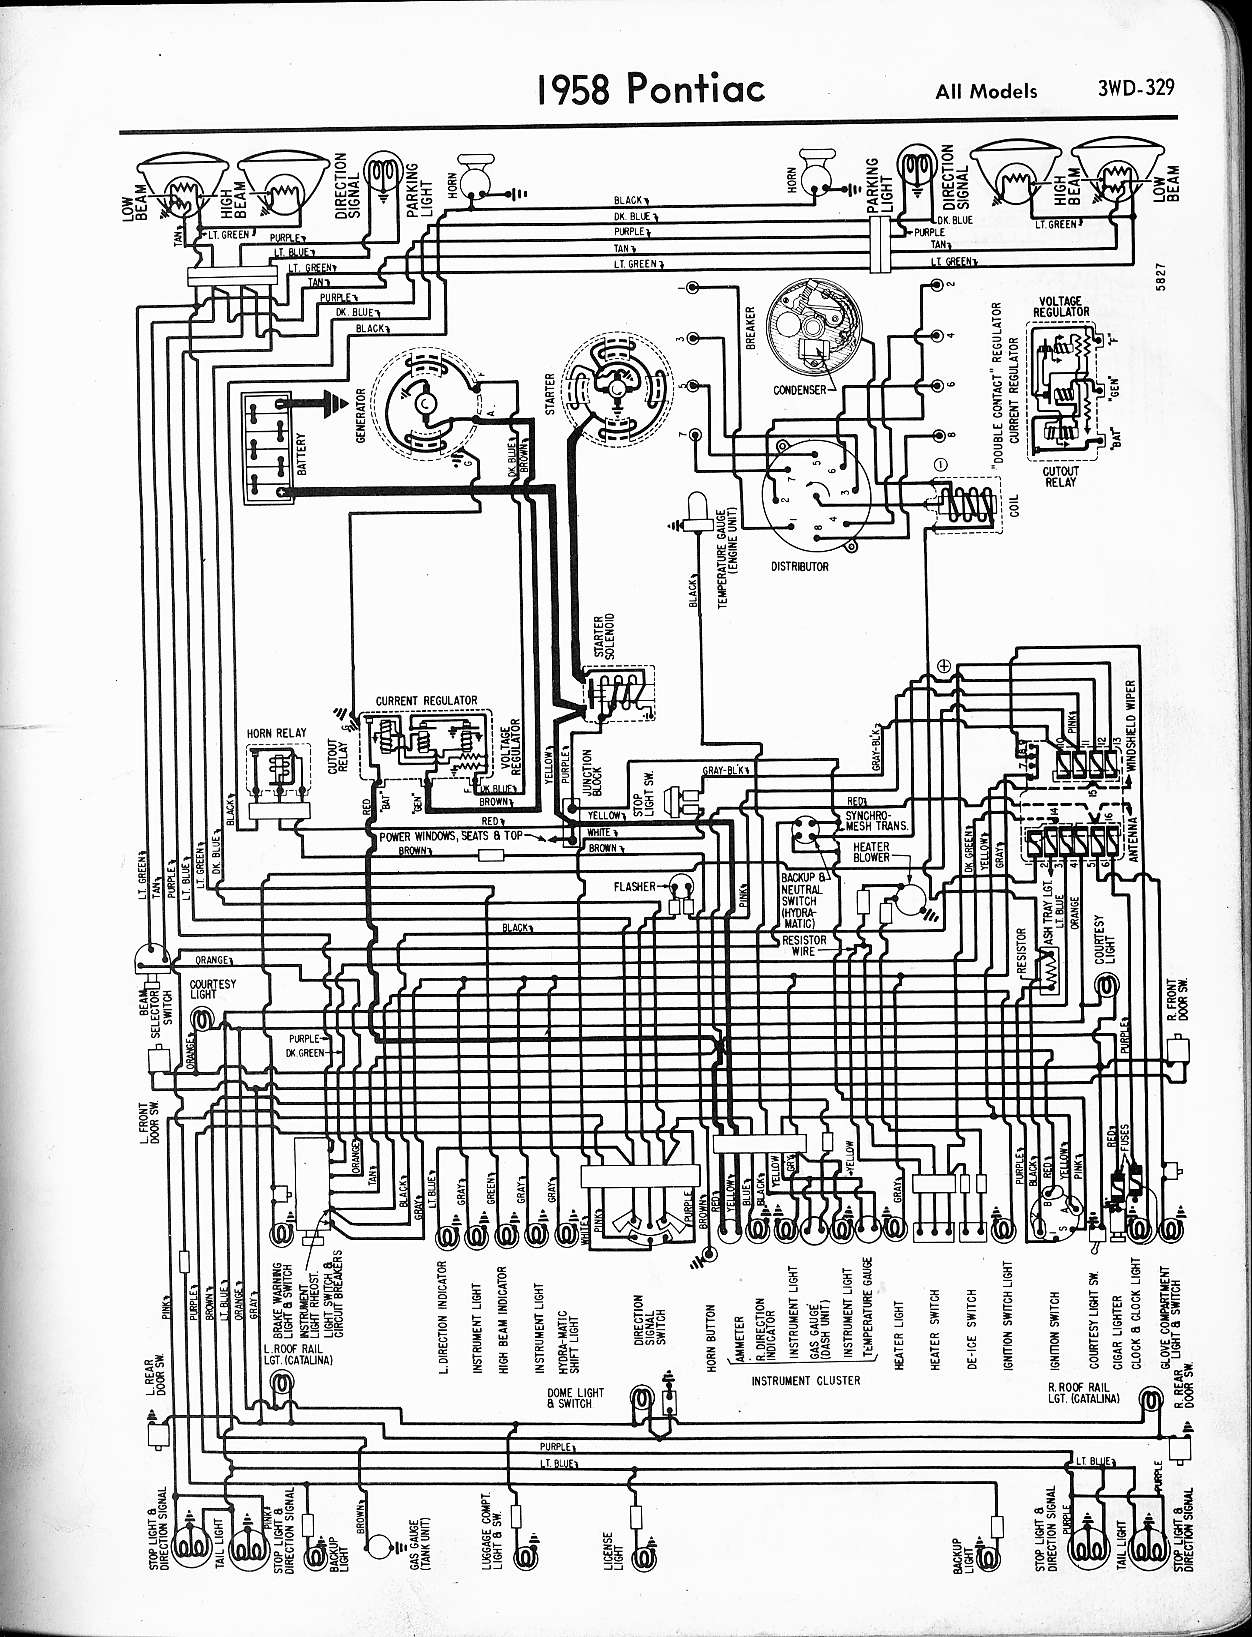 AE491B Pontiac G8 Radio Wiring Diagram Free Download | Wiring ResourcesWiring Resources